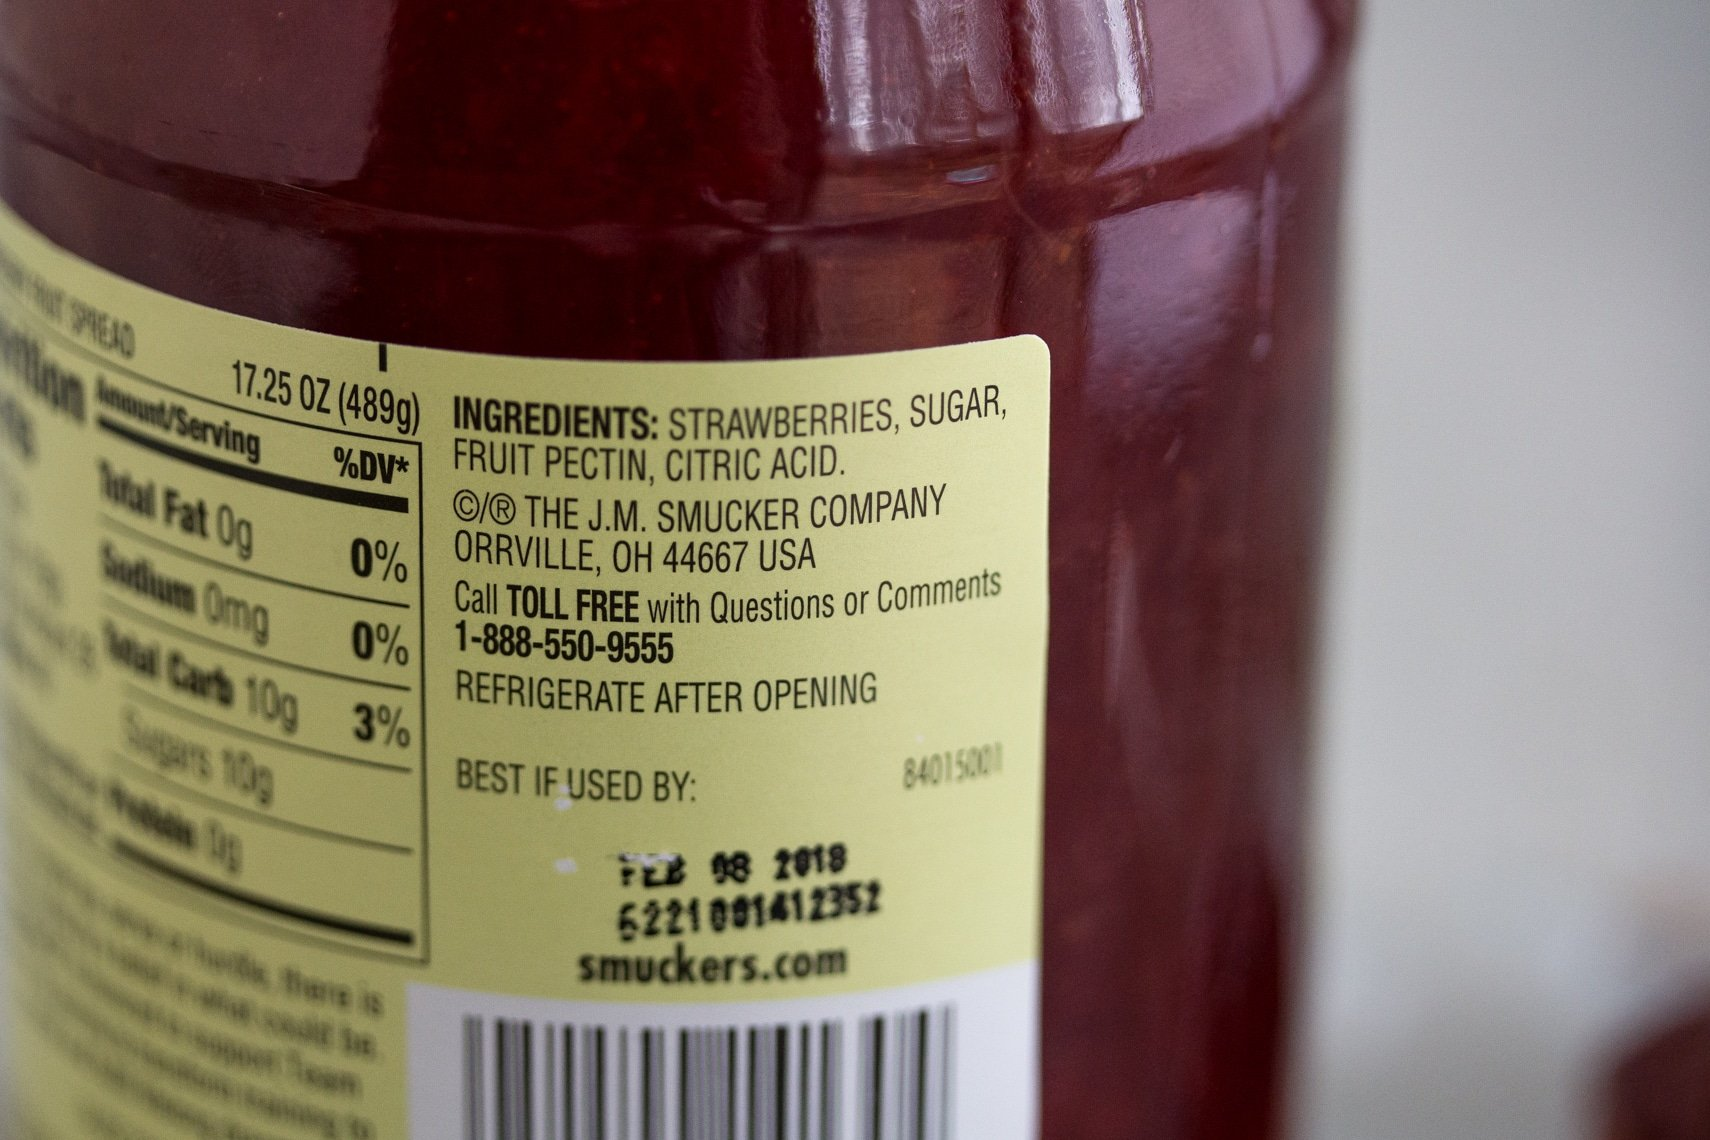 Smucker's Natural Strawberry Fruit Spread Ingredient label